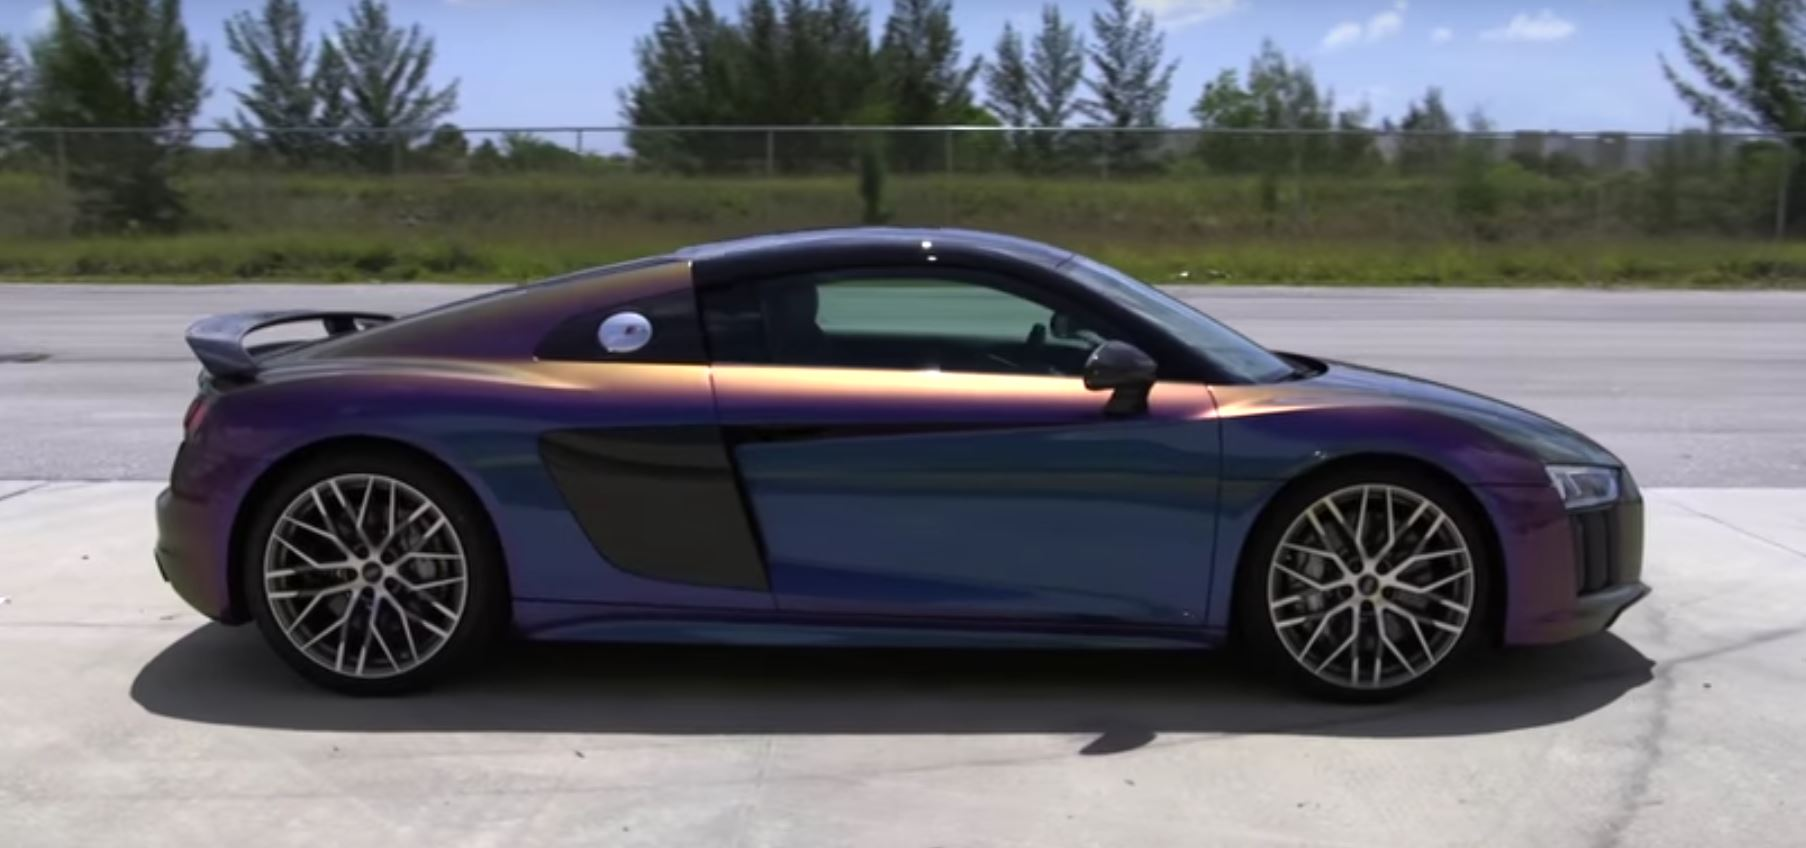 2017 Audi R8 Gets Crazy Color Flip Thanks To Dipyourcar